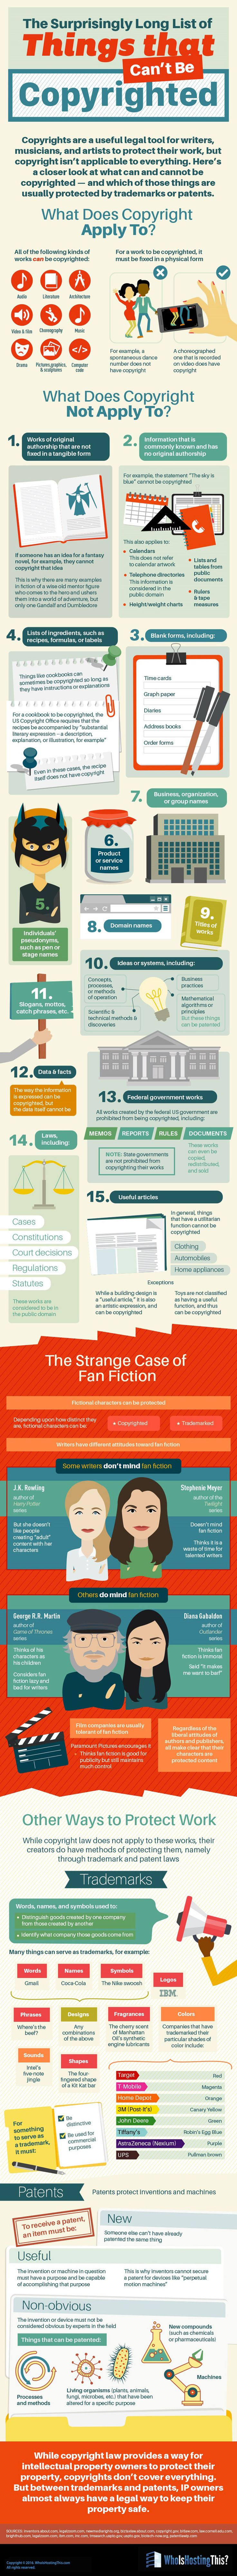 things-that-can-and-cant-be-copyrighted-infographic